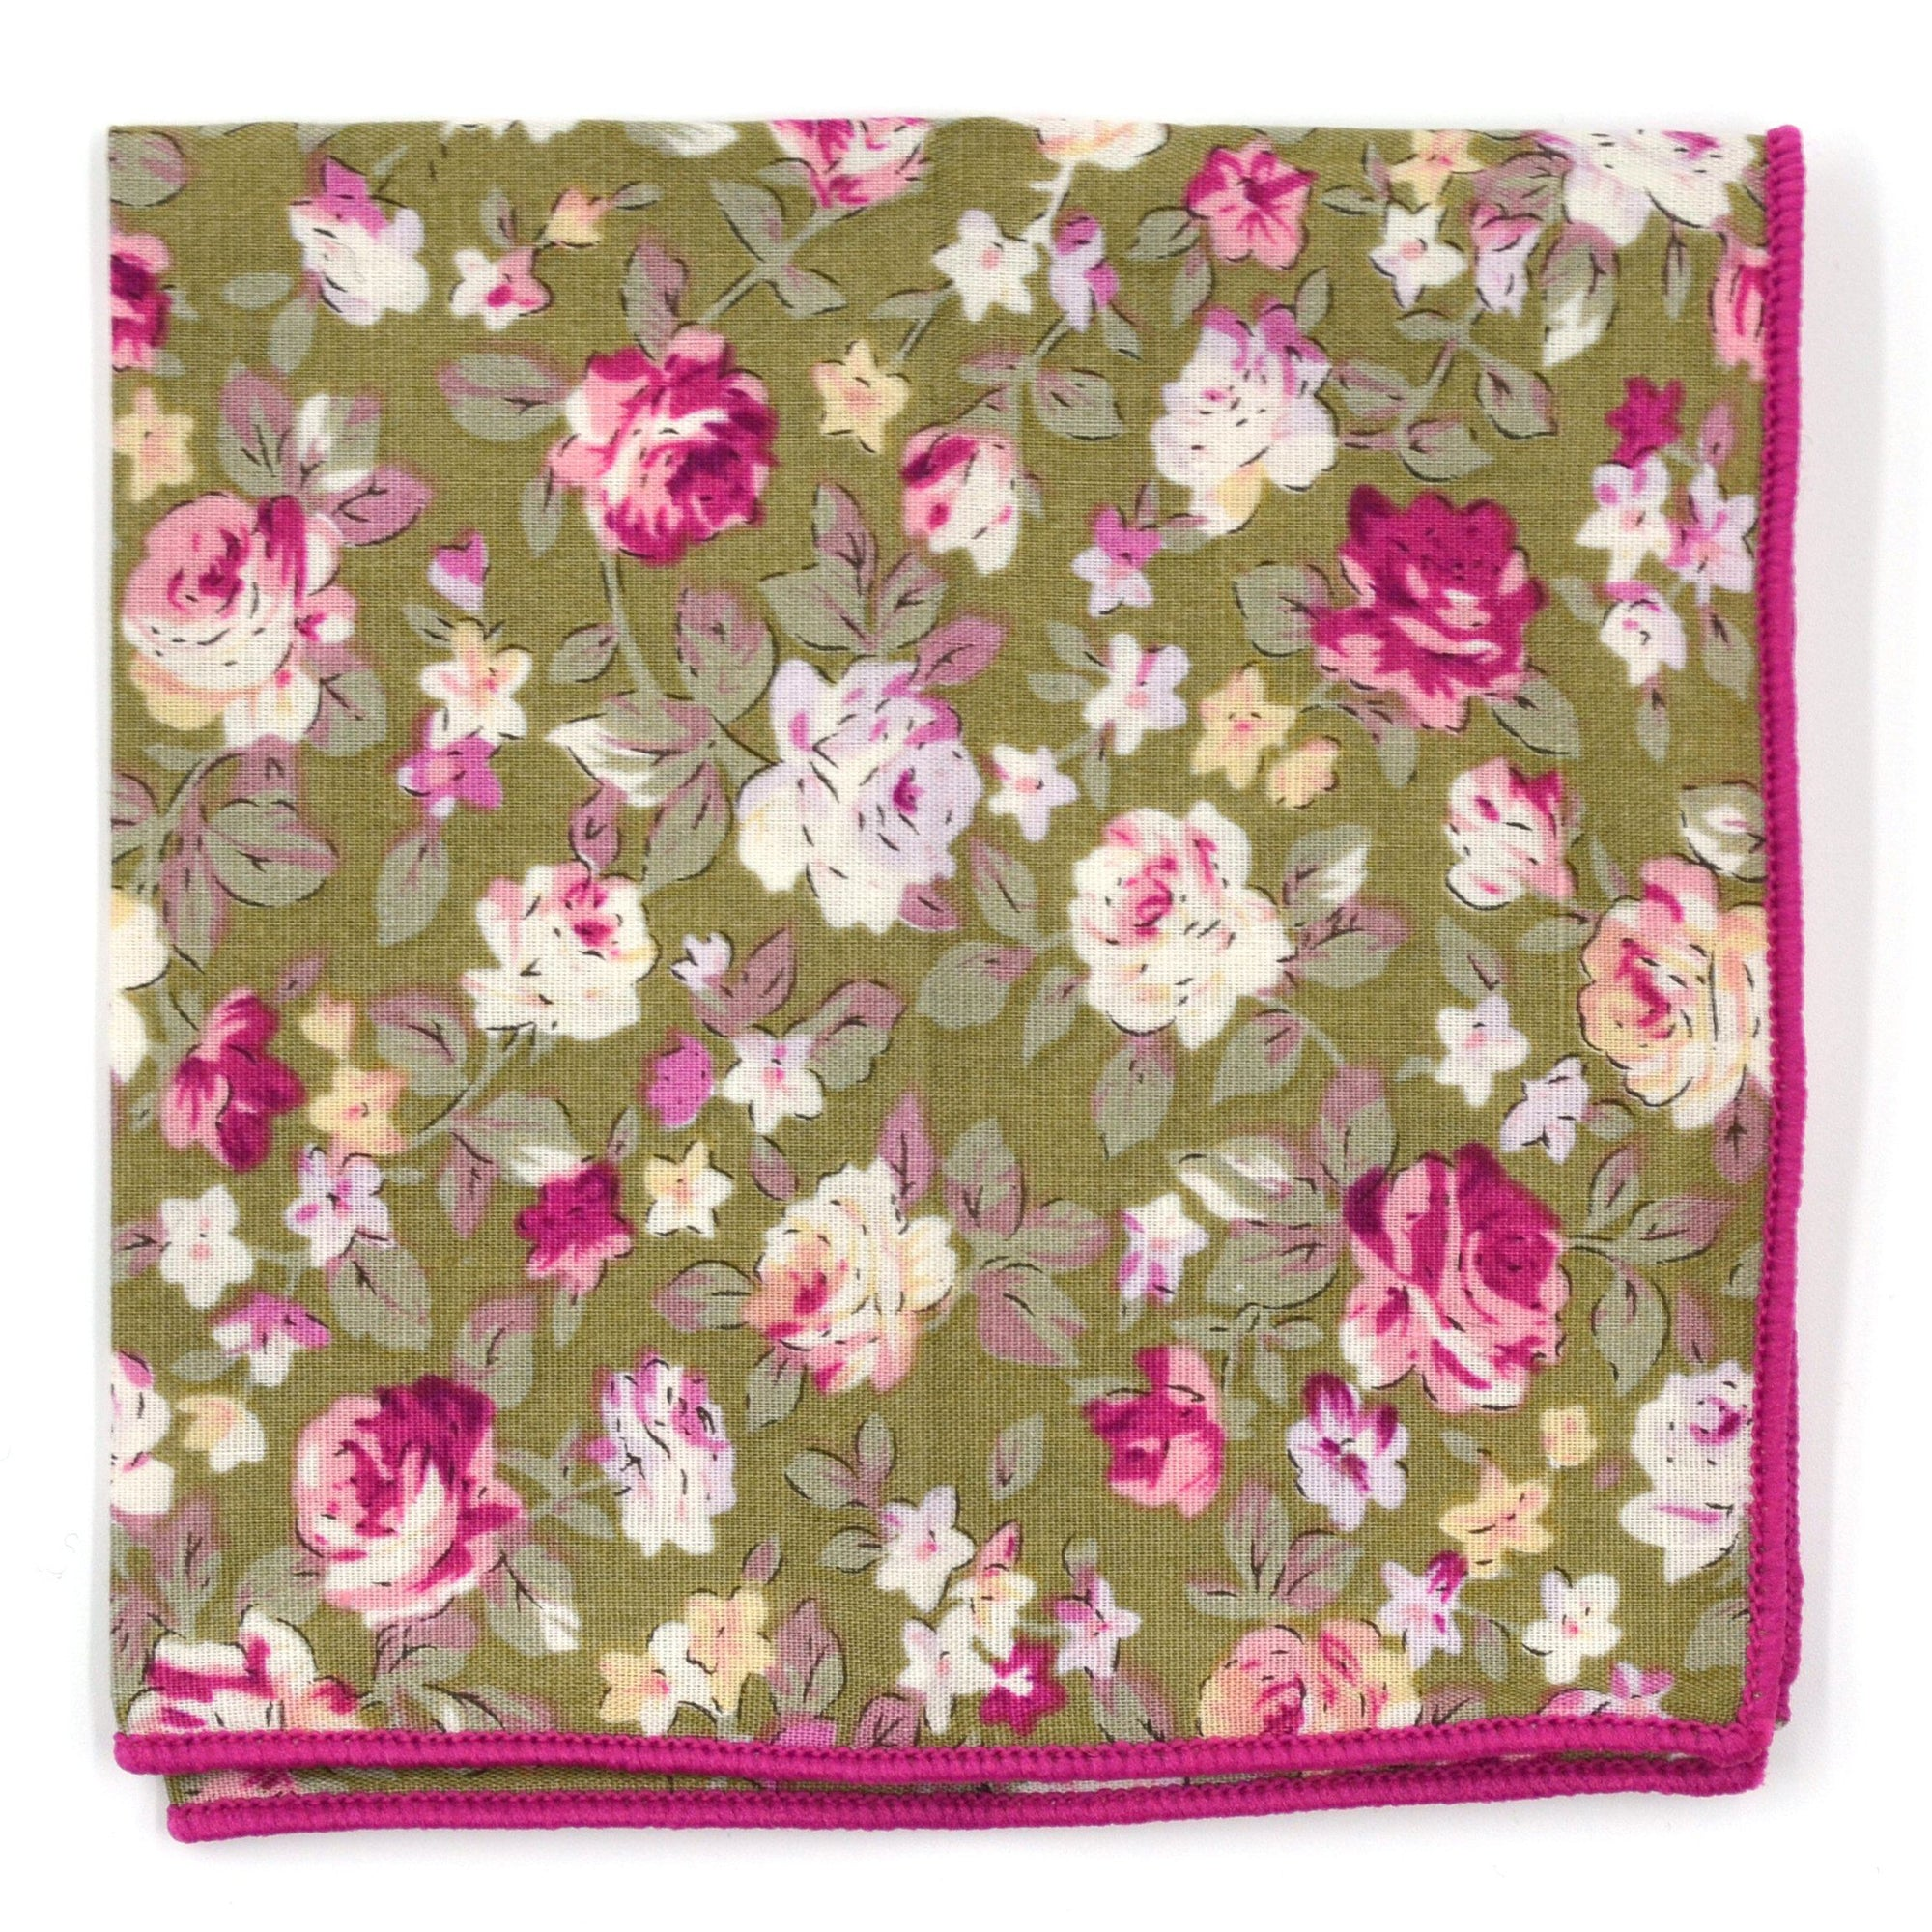 Pocket Square - Floral Lily Rose Pocket Square